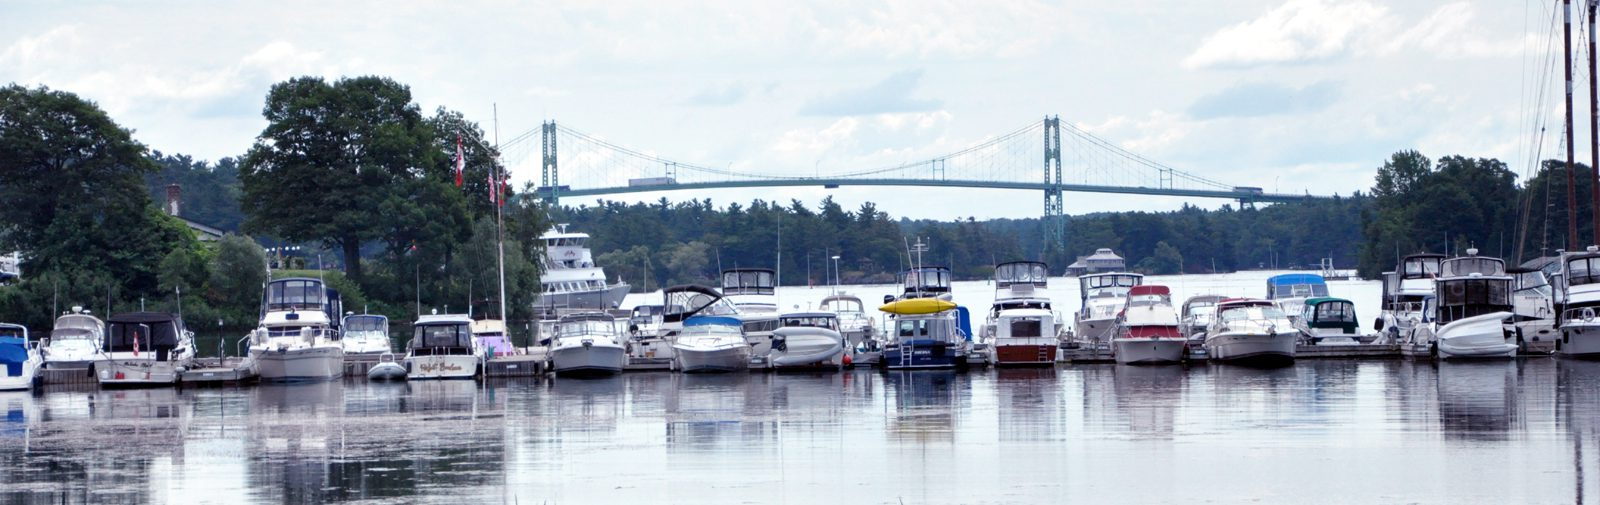 Thousand Islands Bridge with boats - sliver